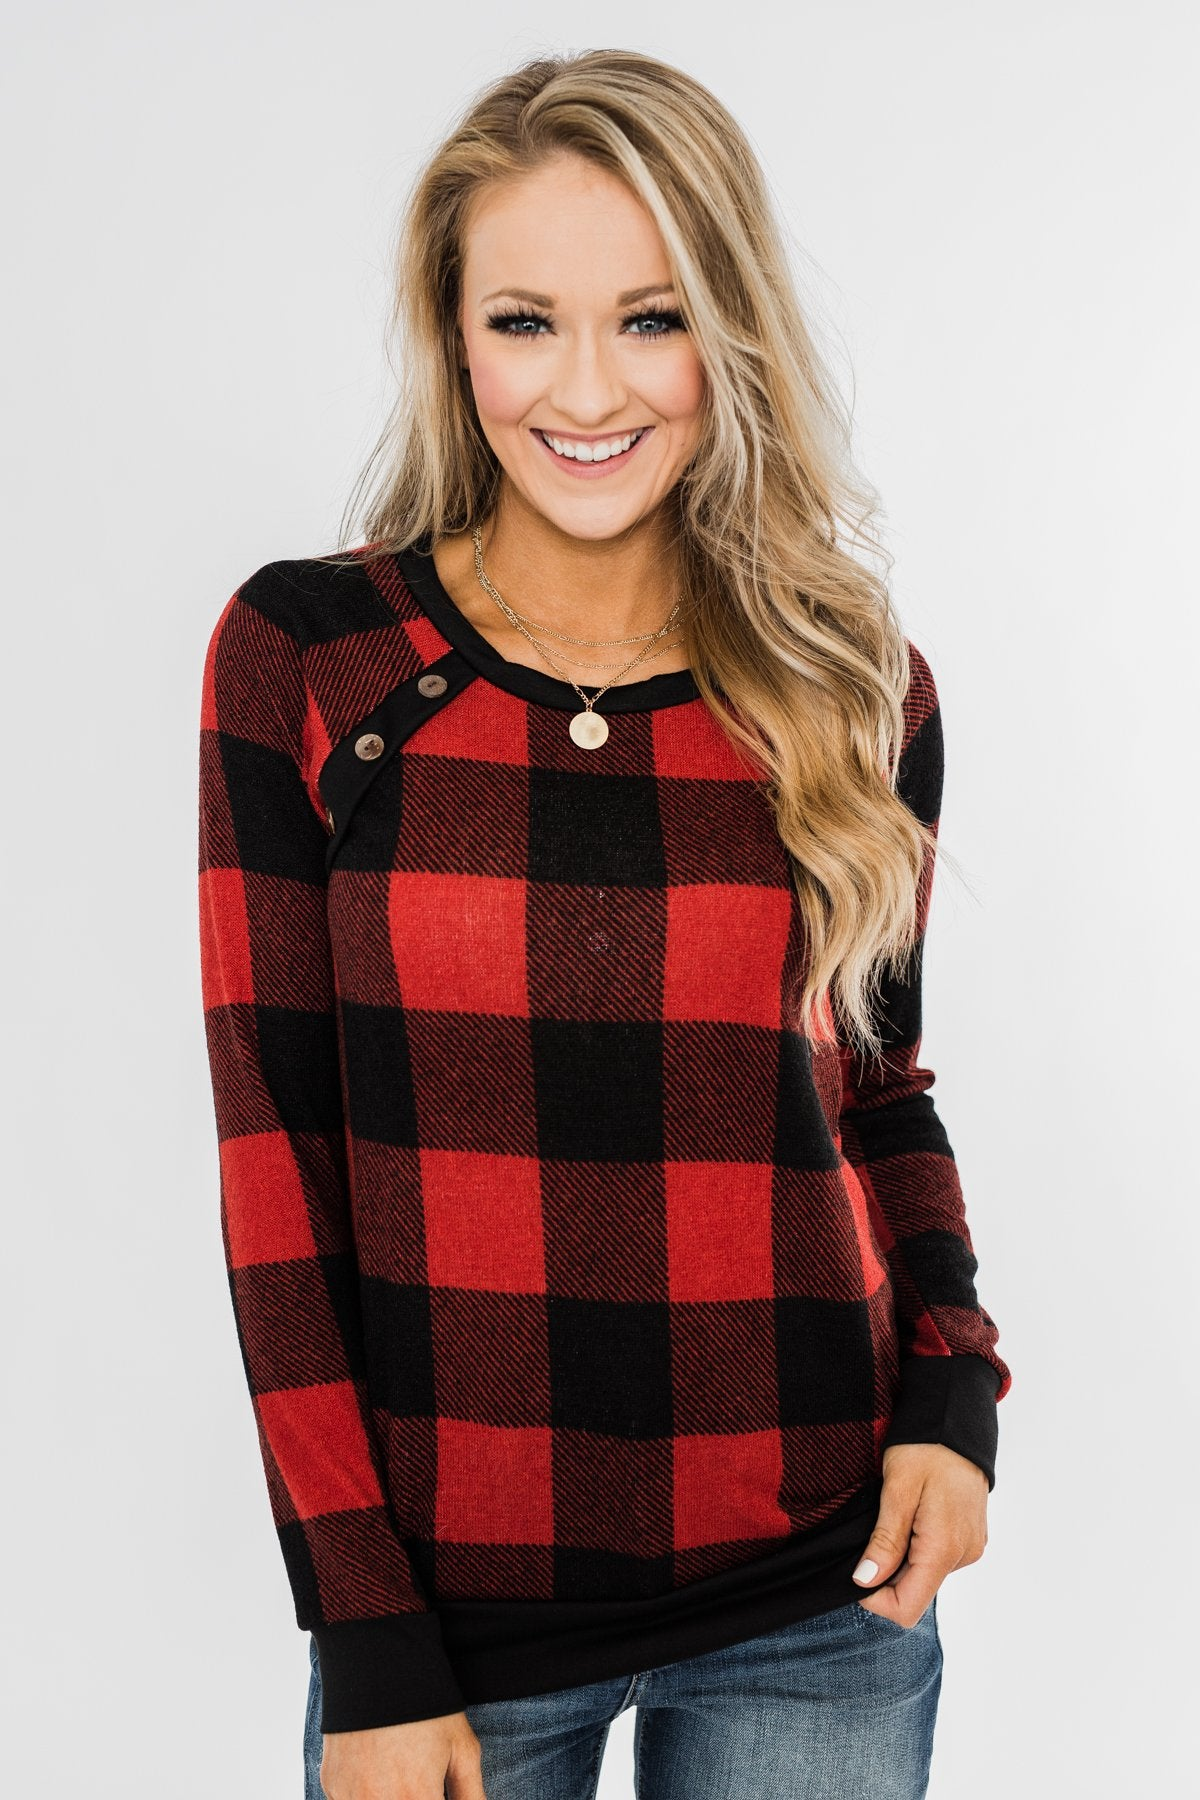 On My Mind Button Detail Top- Buffalo Plaid